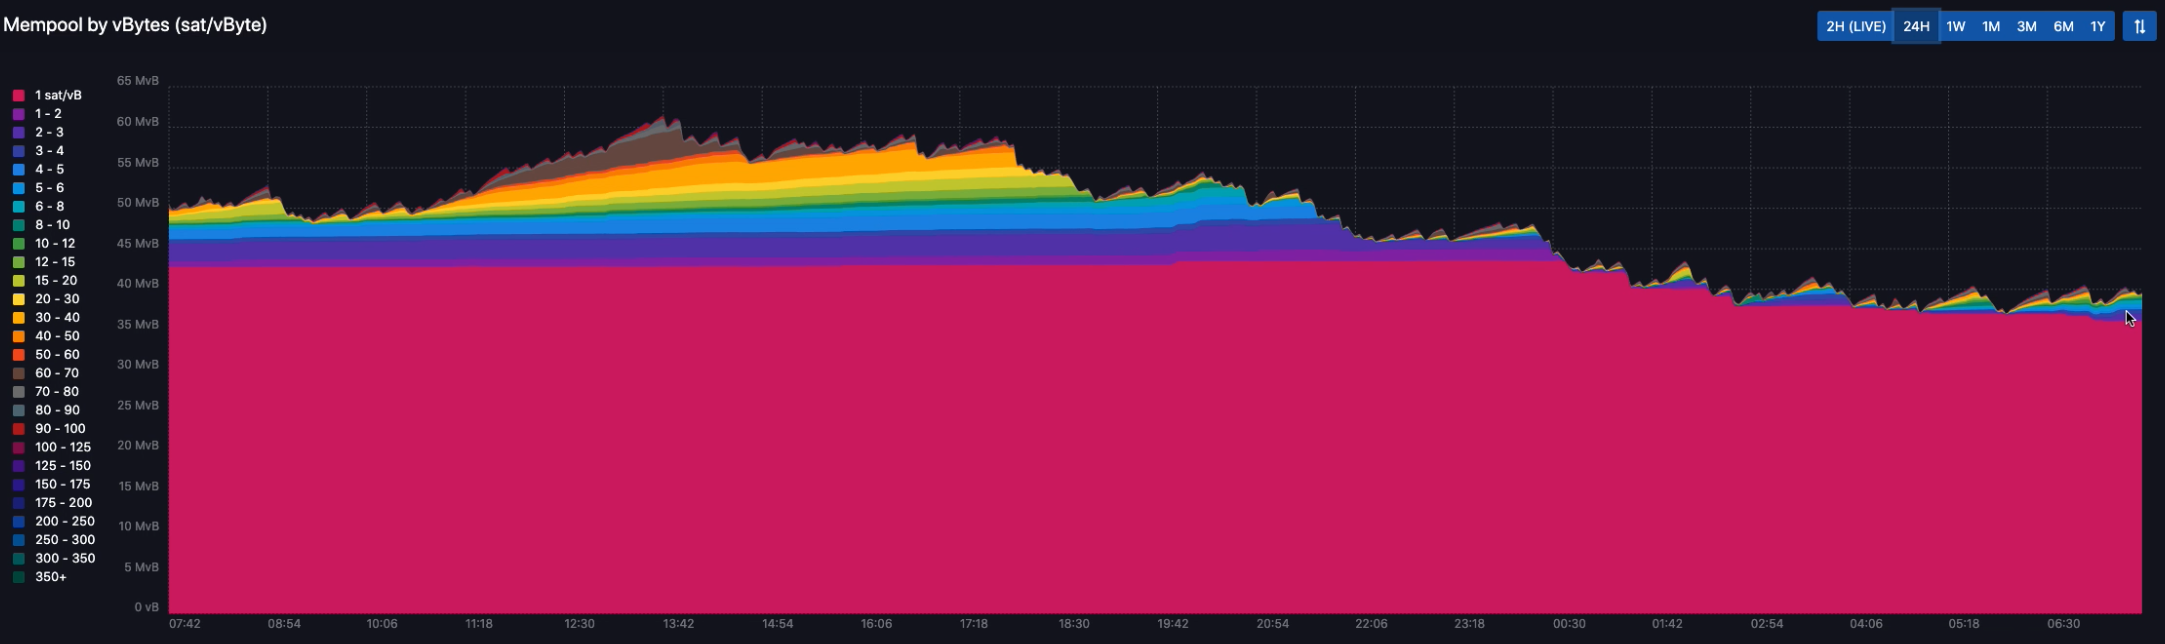 Mempool.space: Unconfirmed transaction backlog in the mempool